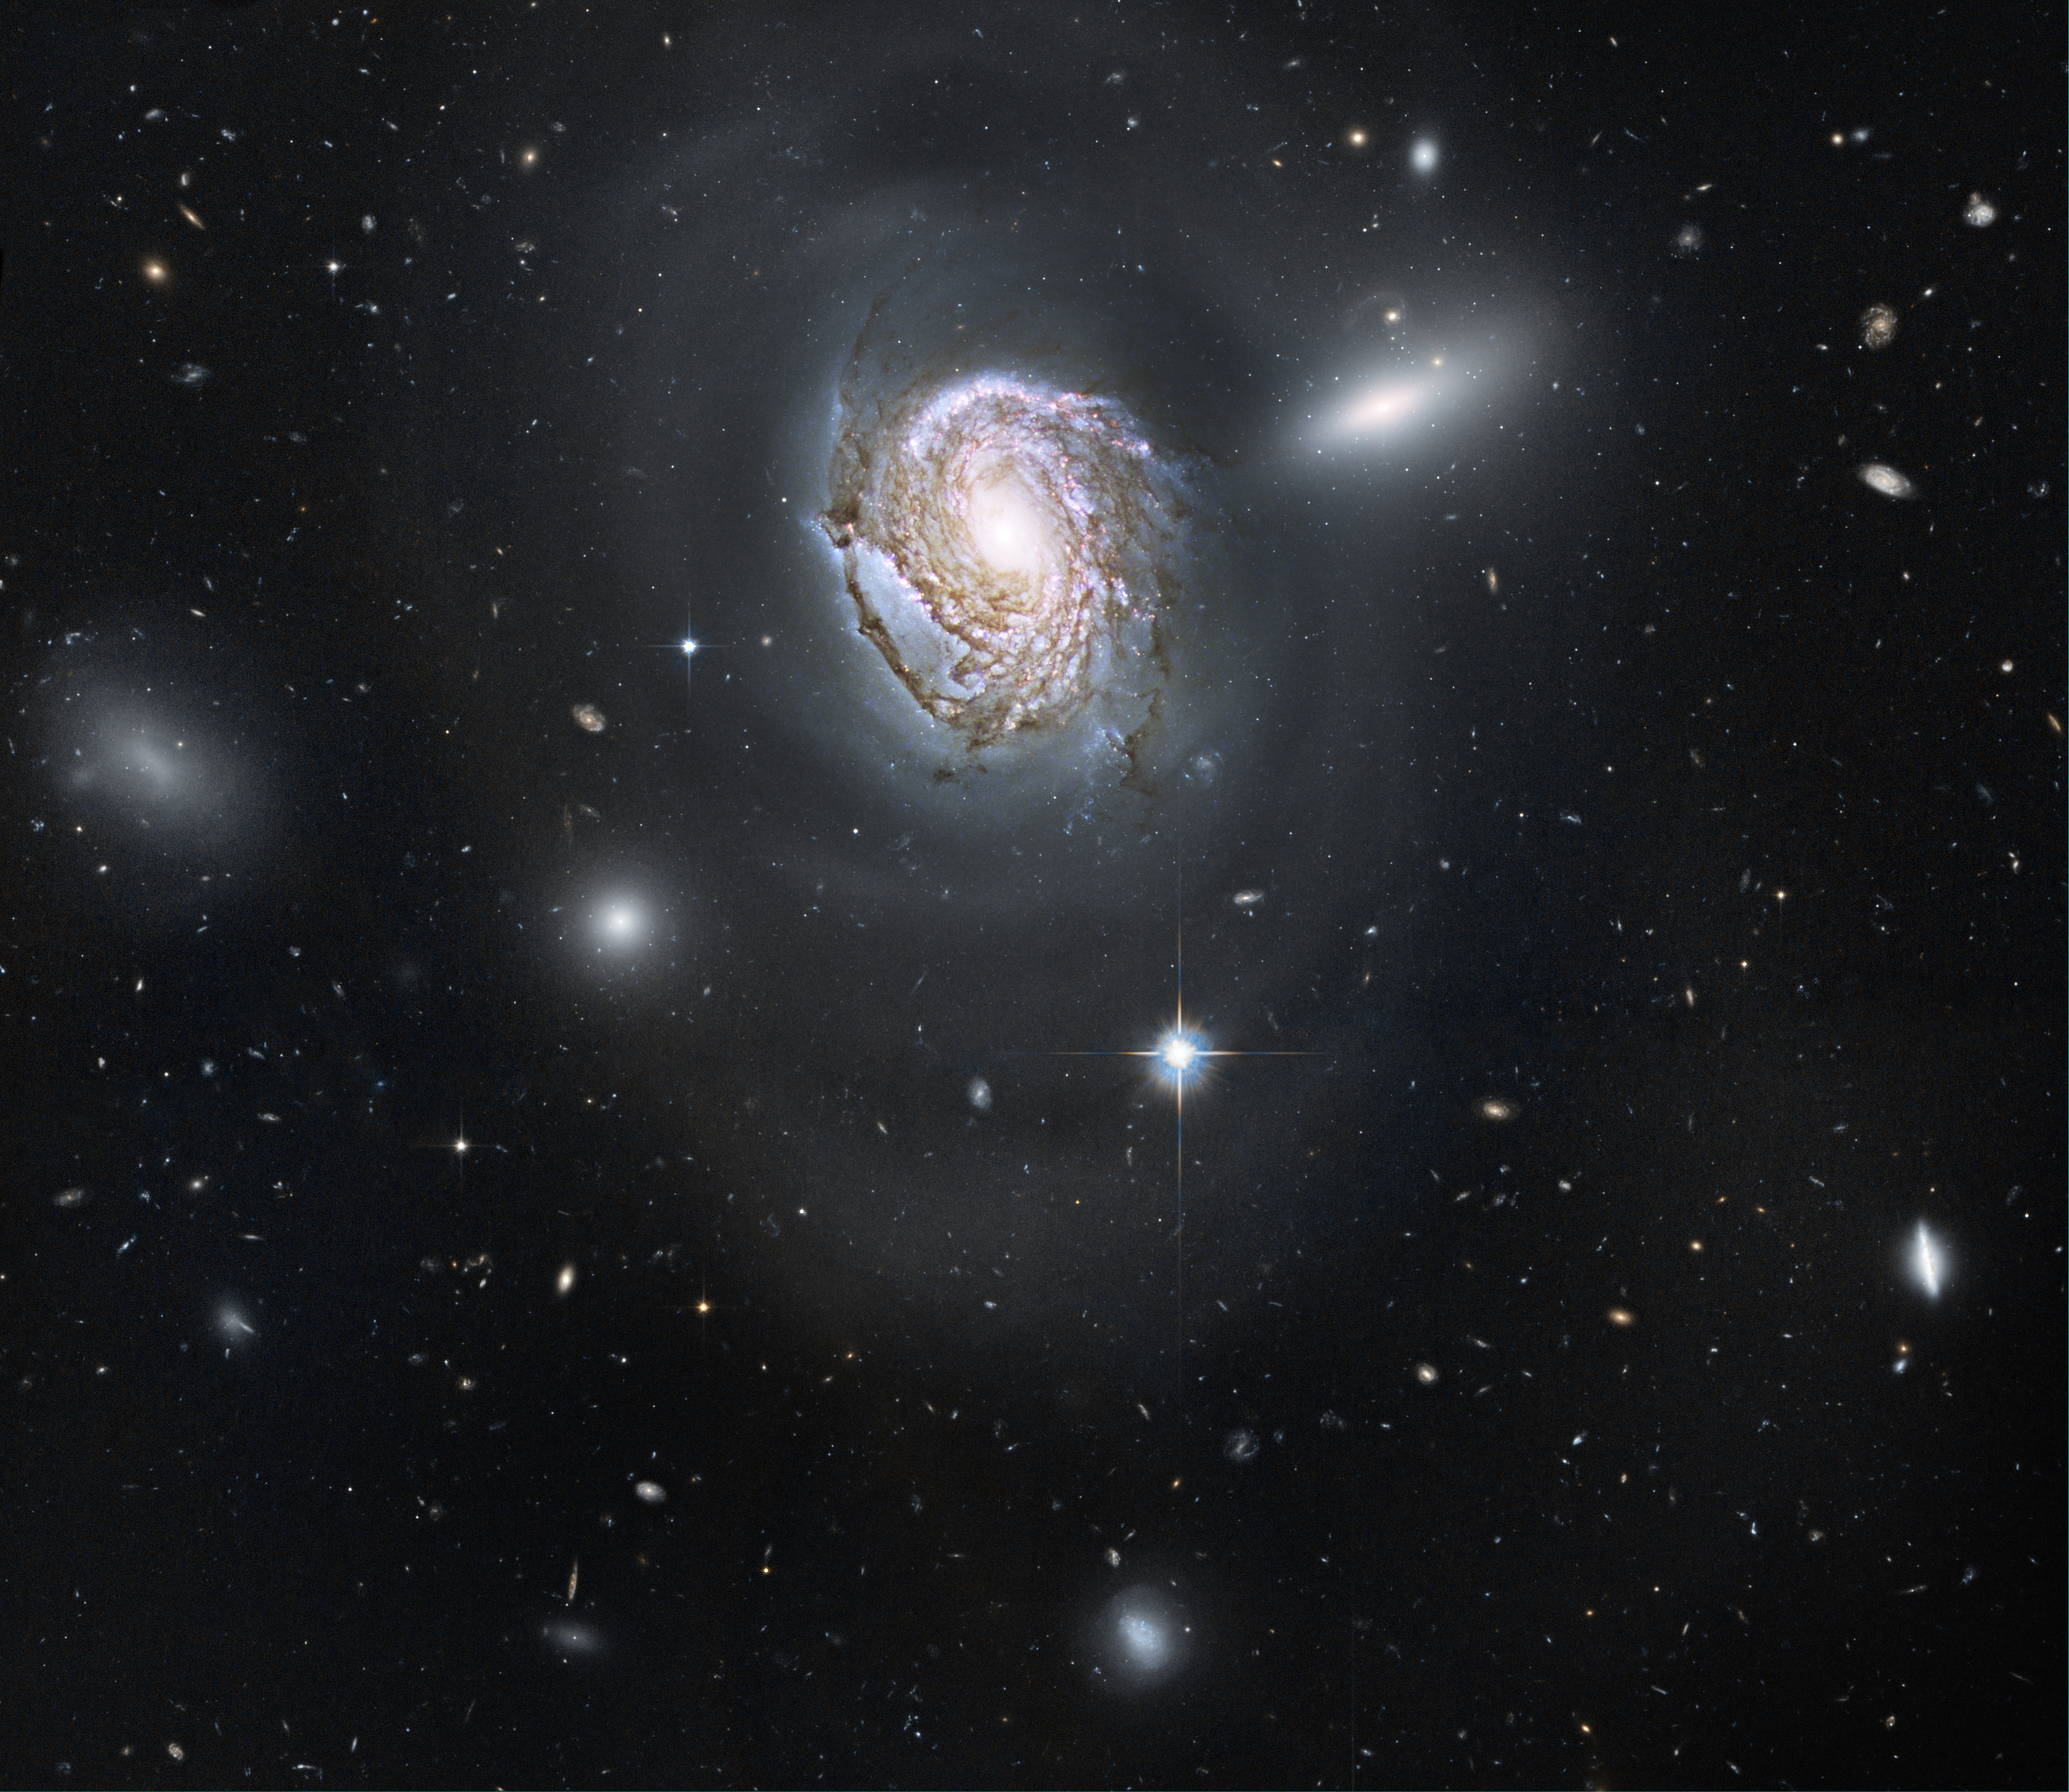 Spiral galaxy NGC 4911 in the Coma Cluster | ESA/Hubble